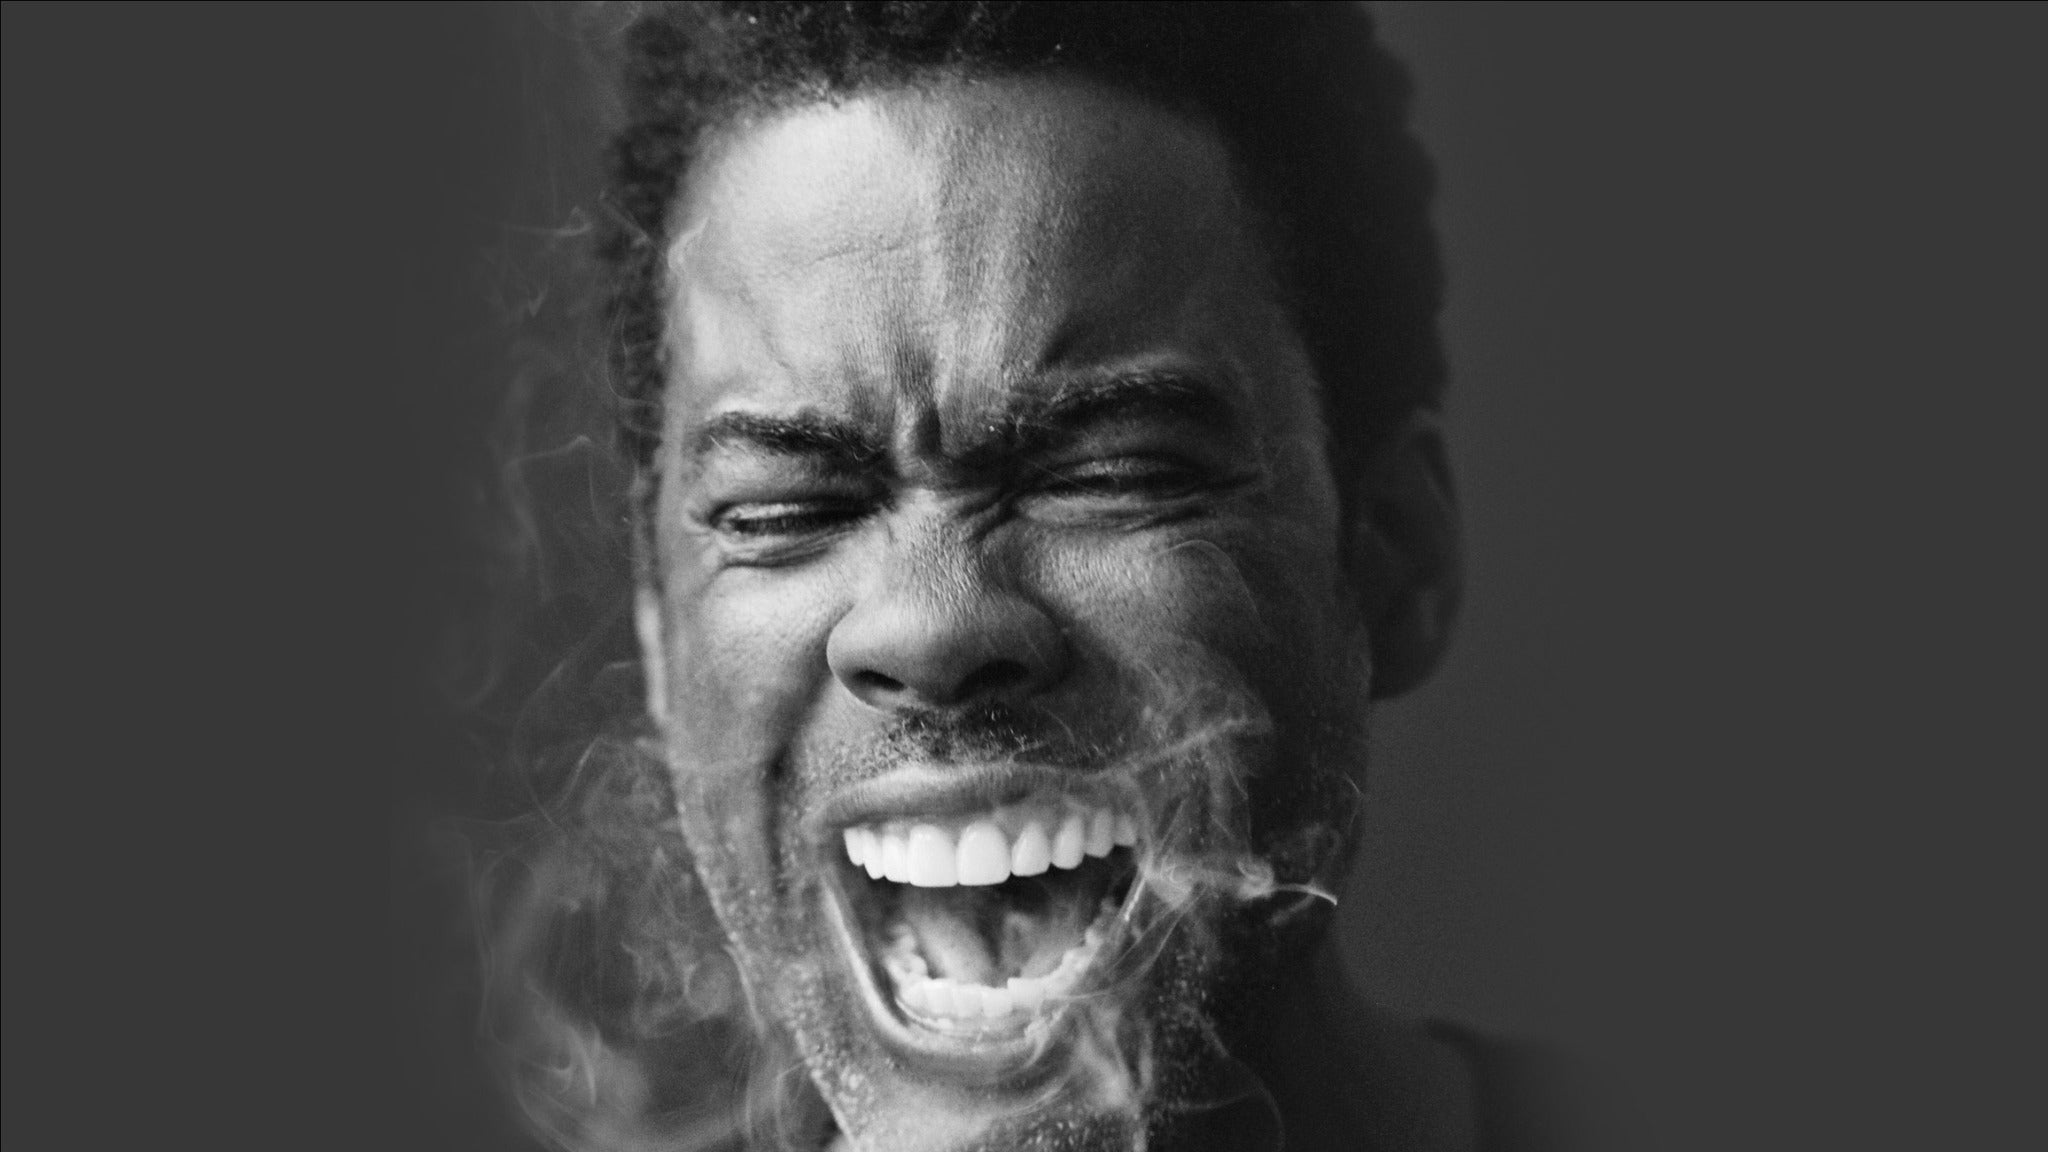 Chris Rock: Total Blackout Tour 2017 at Comerica Theatre